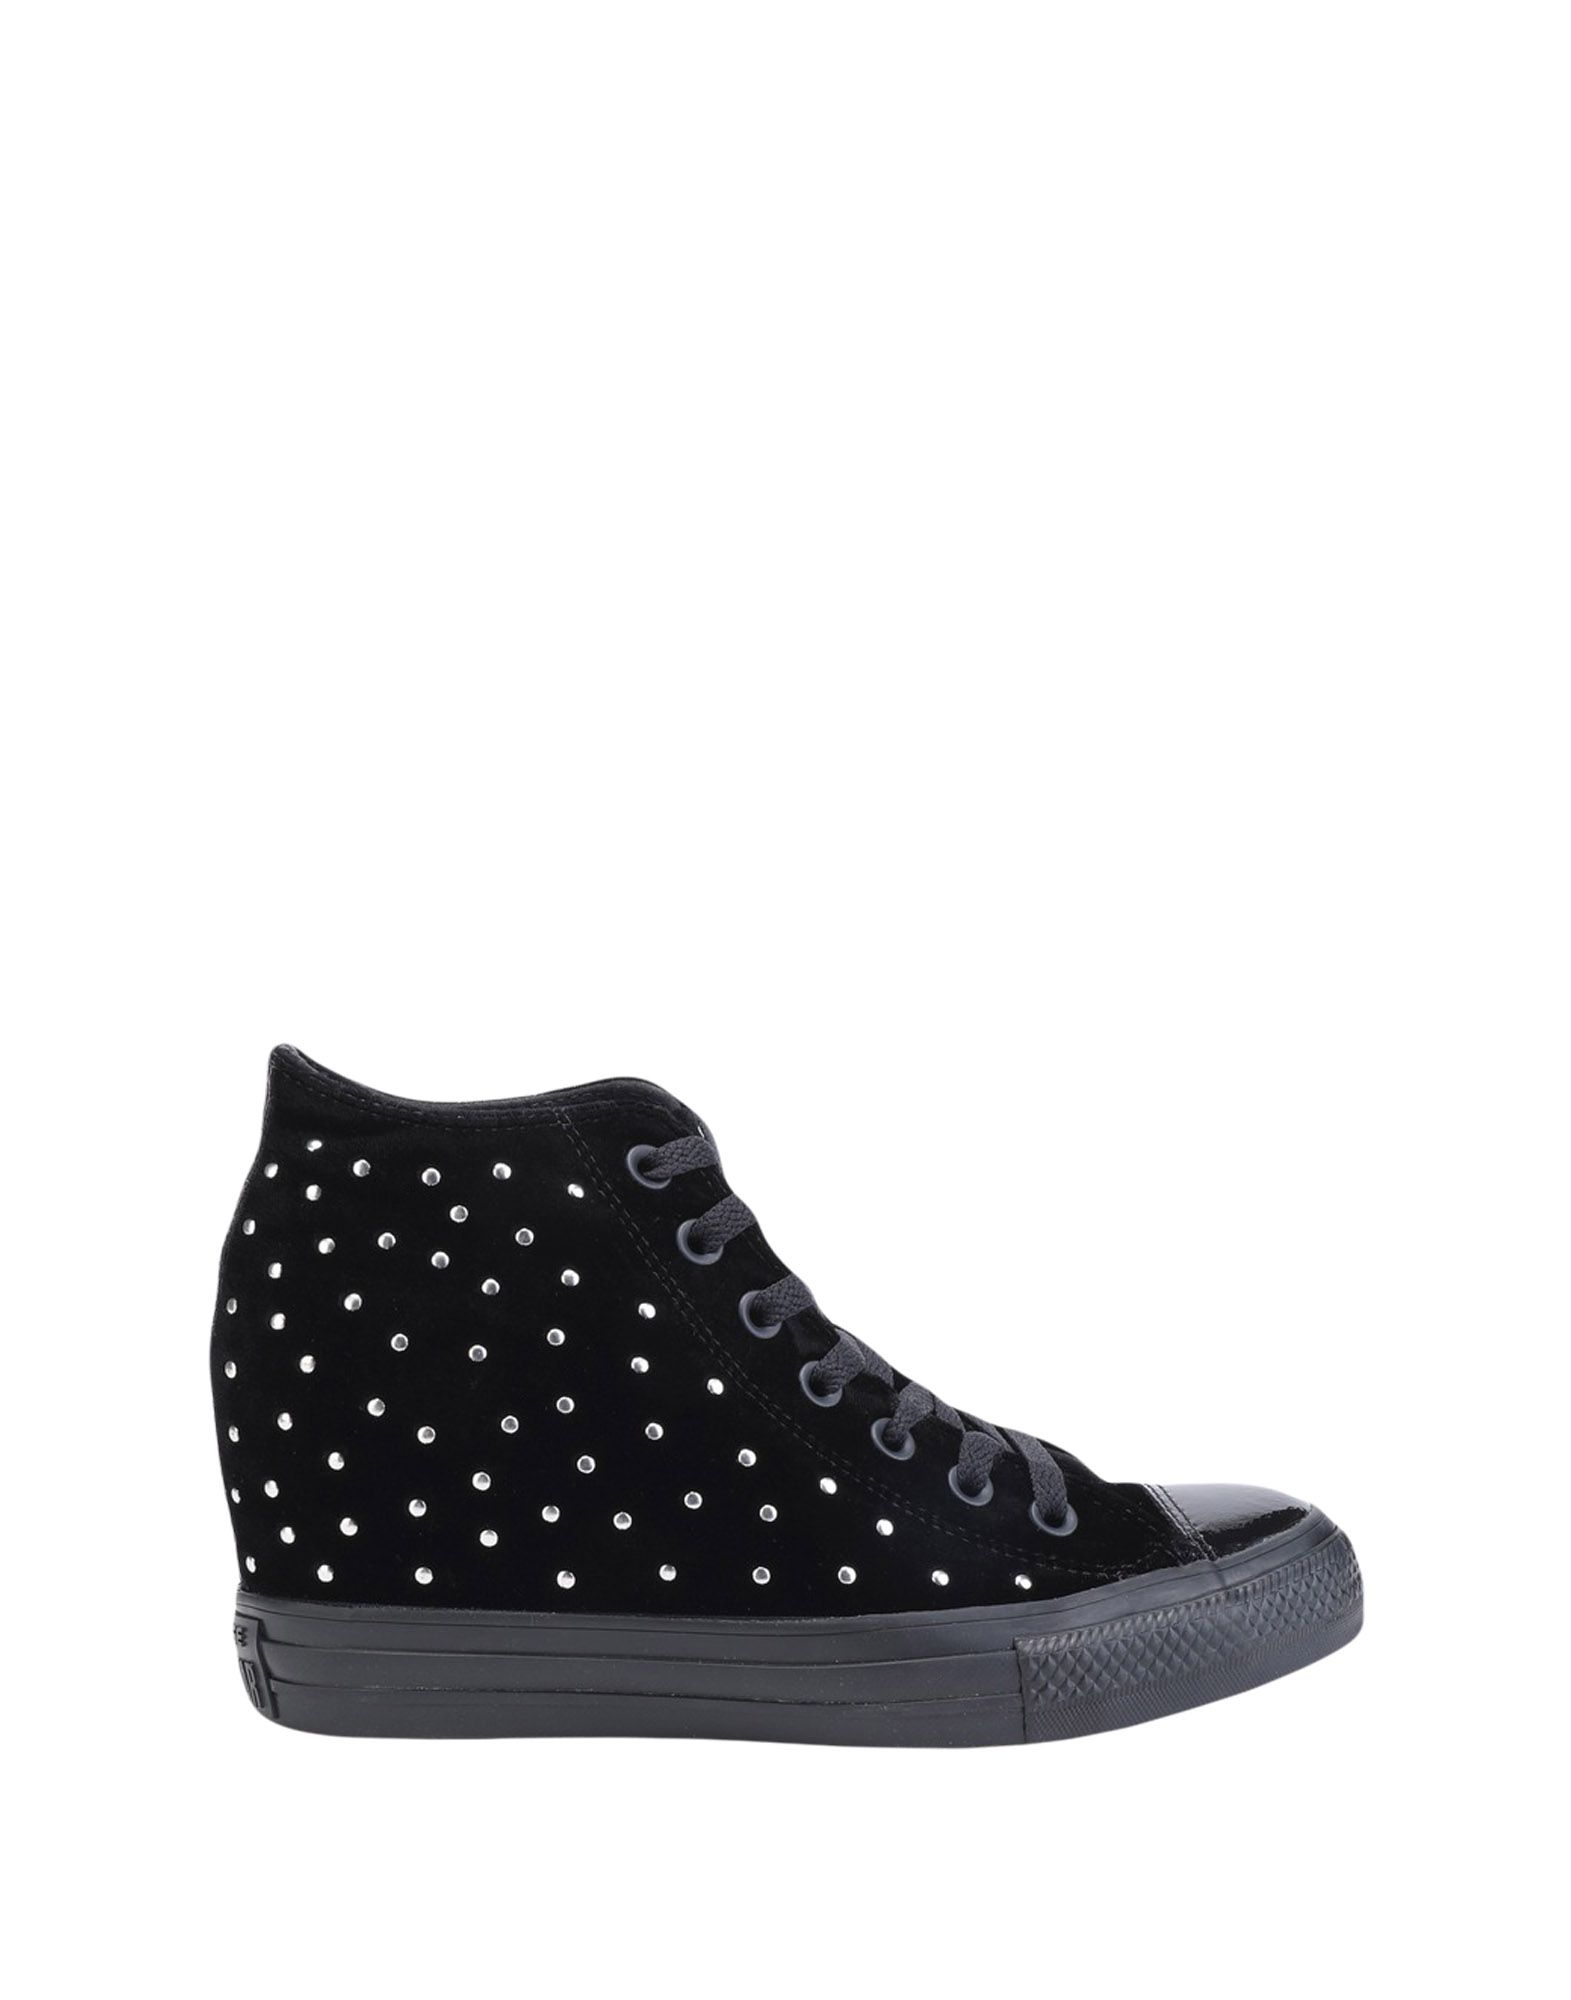 Sneakers Converse All Star Ct As Mid Lux Velvet Studs - Donna - 11356638OW